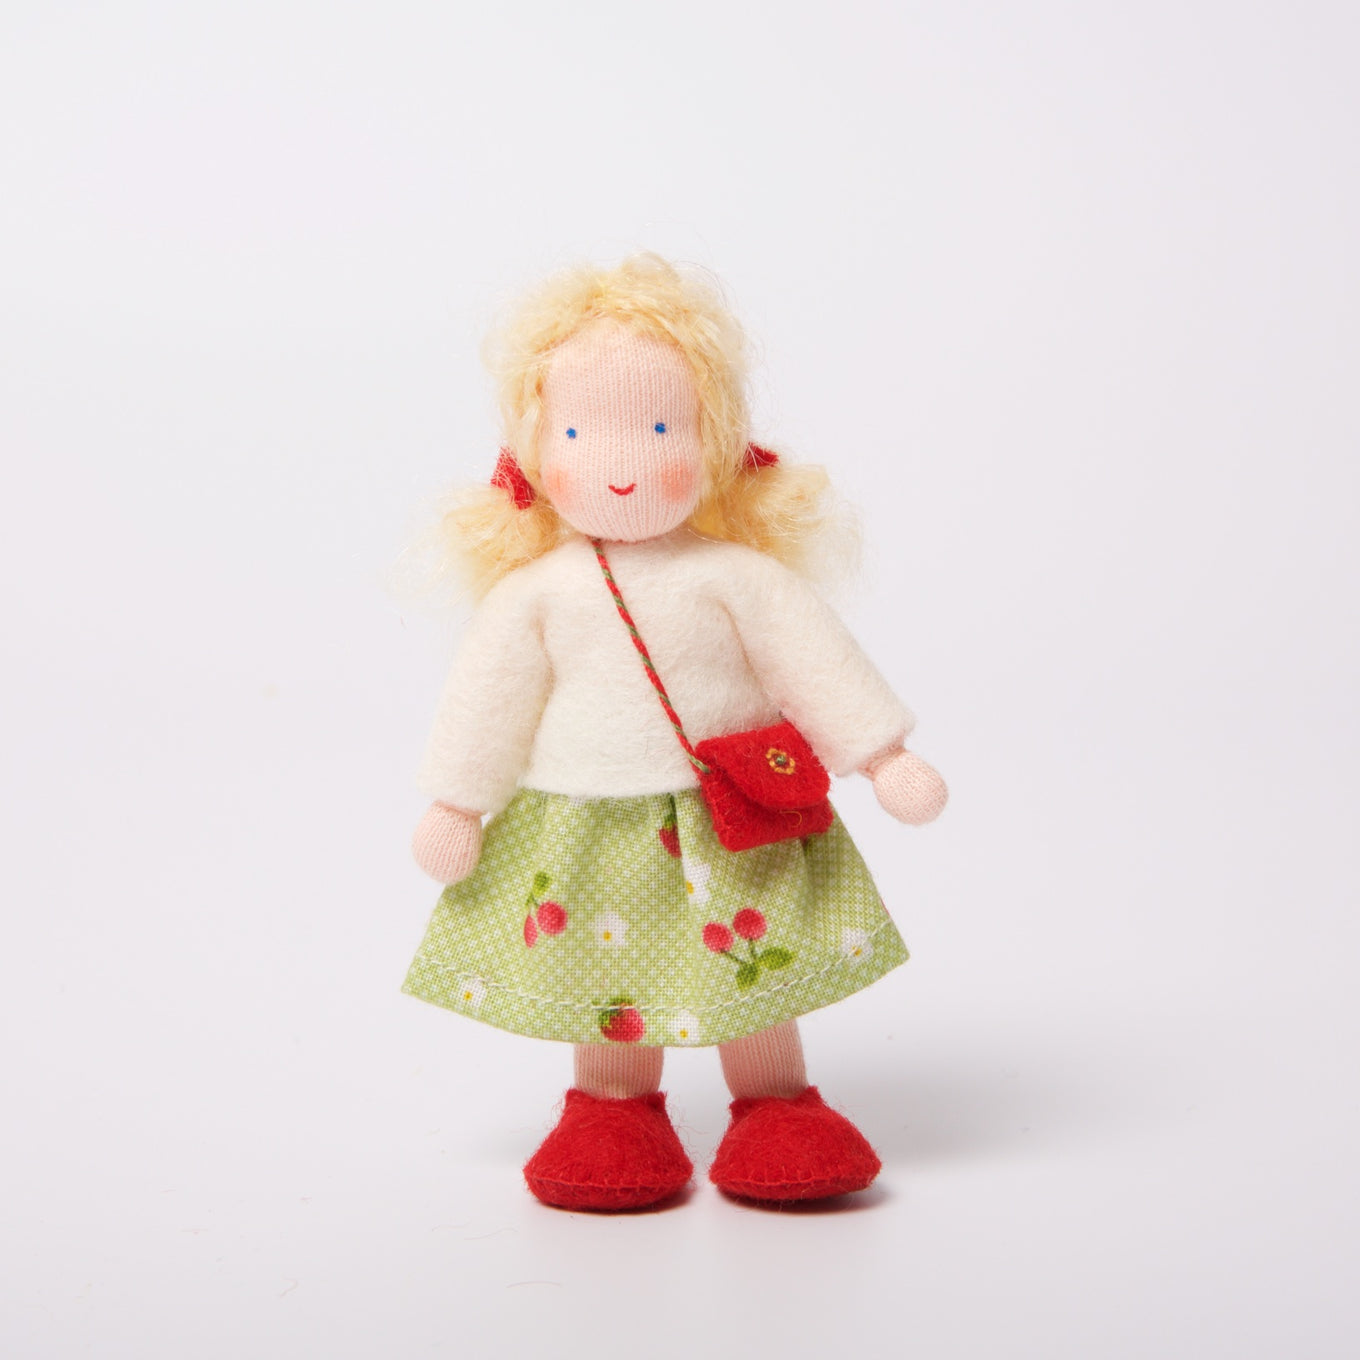 Dolls House | Girl With Blonde Hair